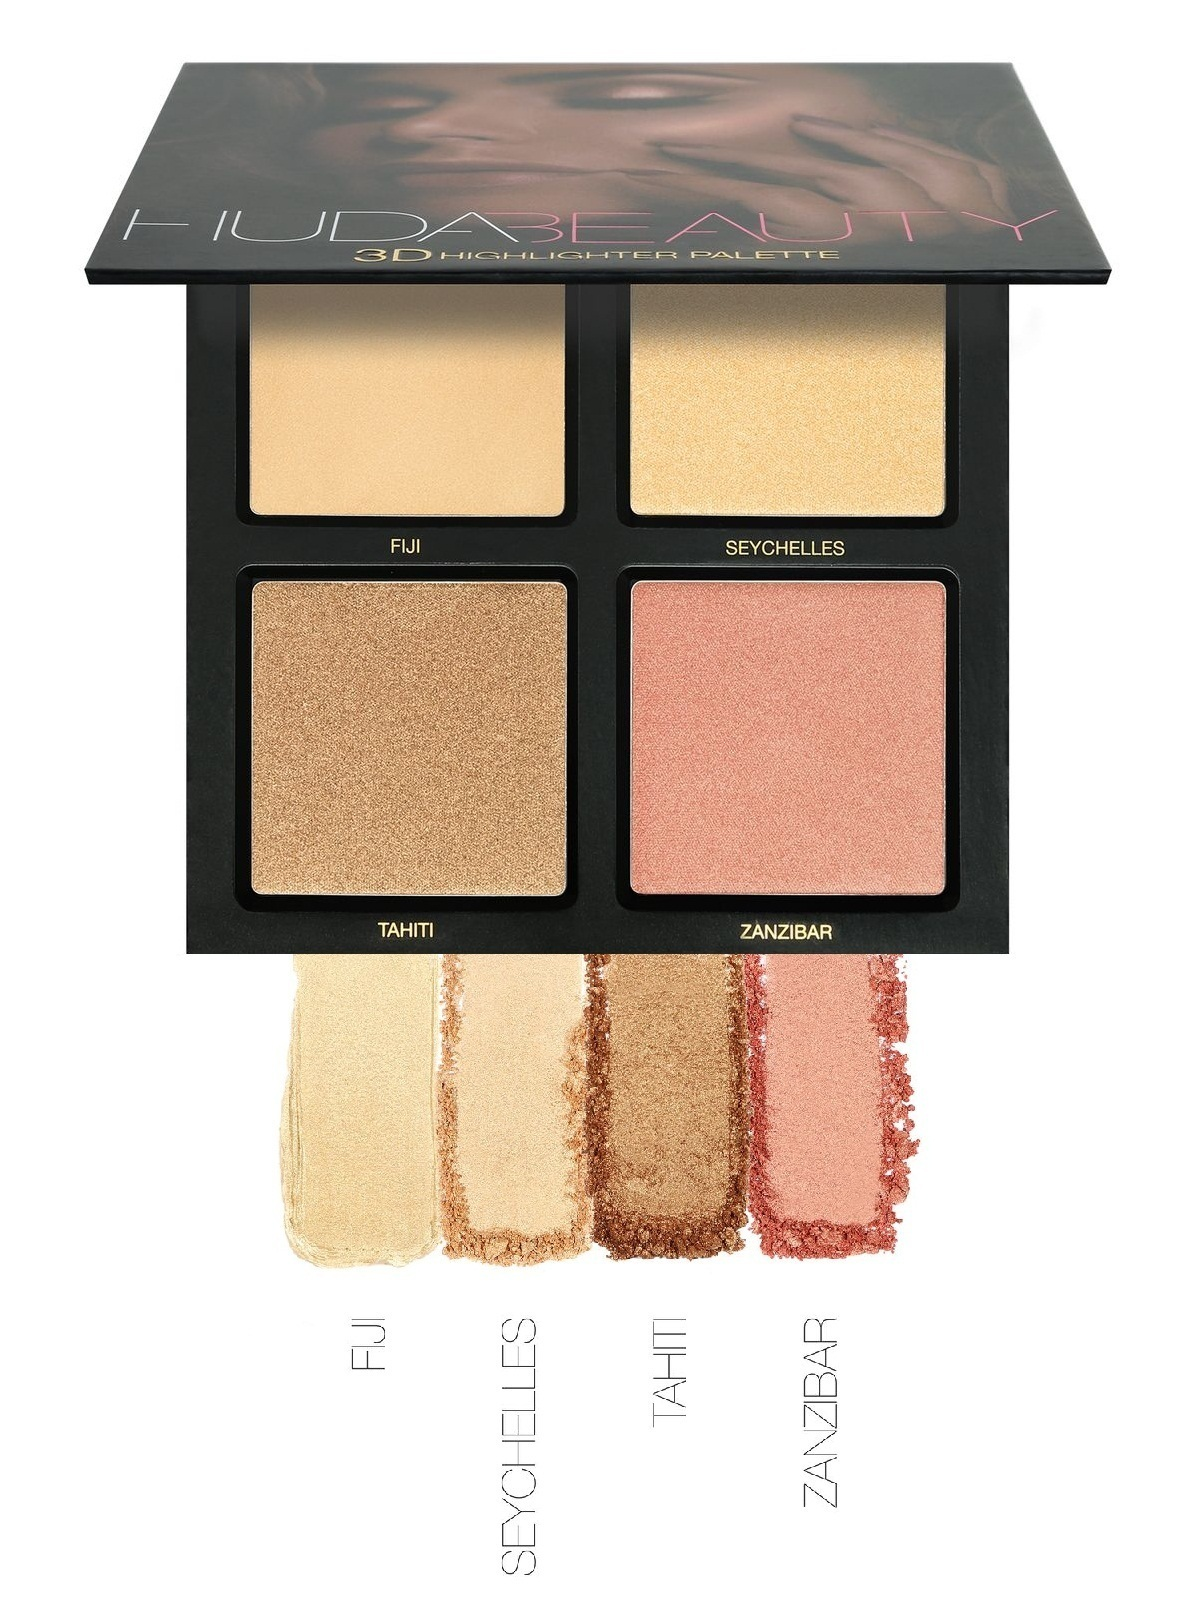 huda beauty 3d highlighter palette the gold sand palette. Black Bedroom Furniture Sets. Home Design Ideas